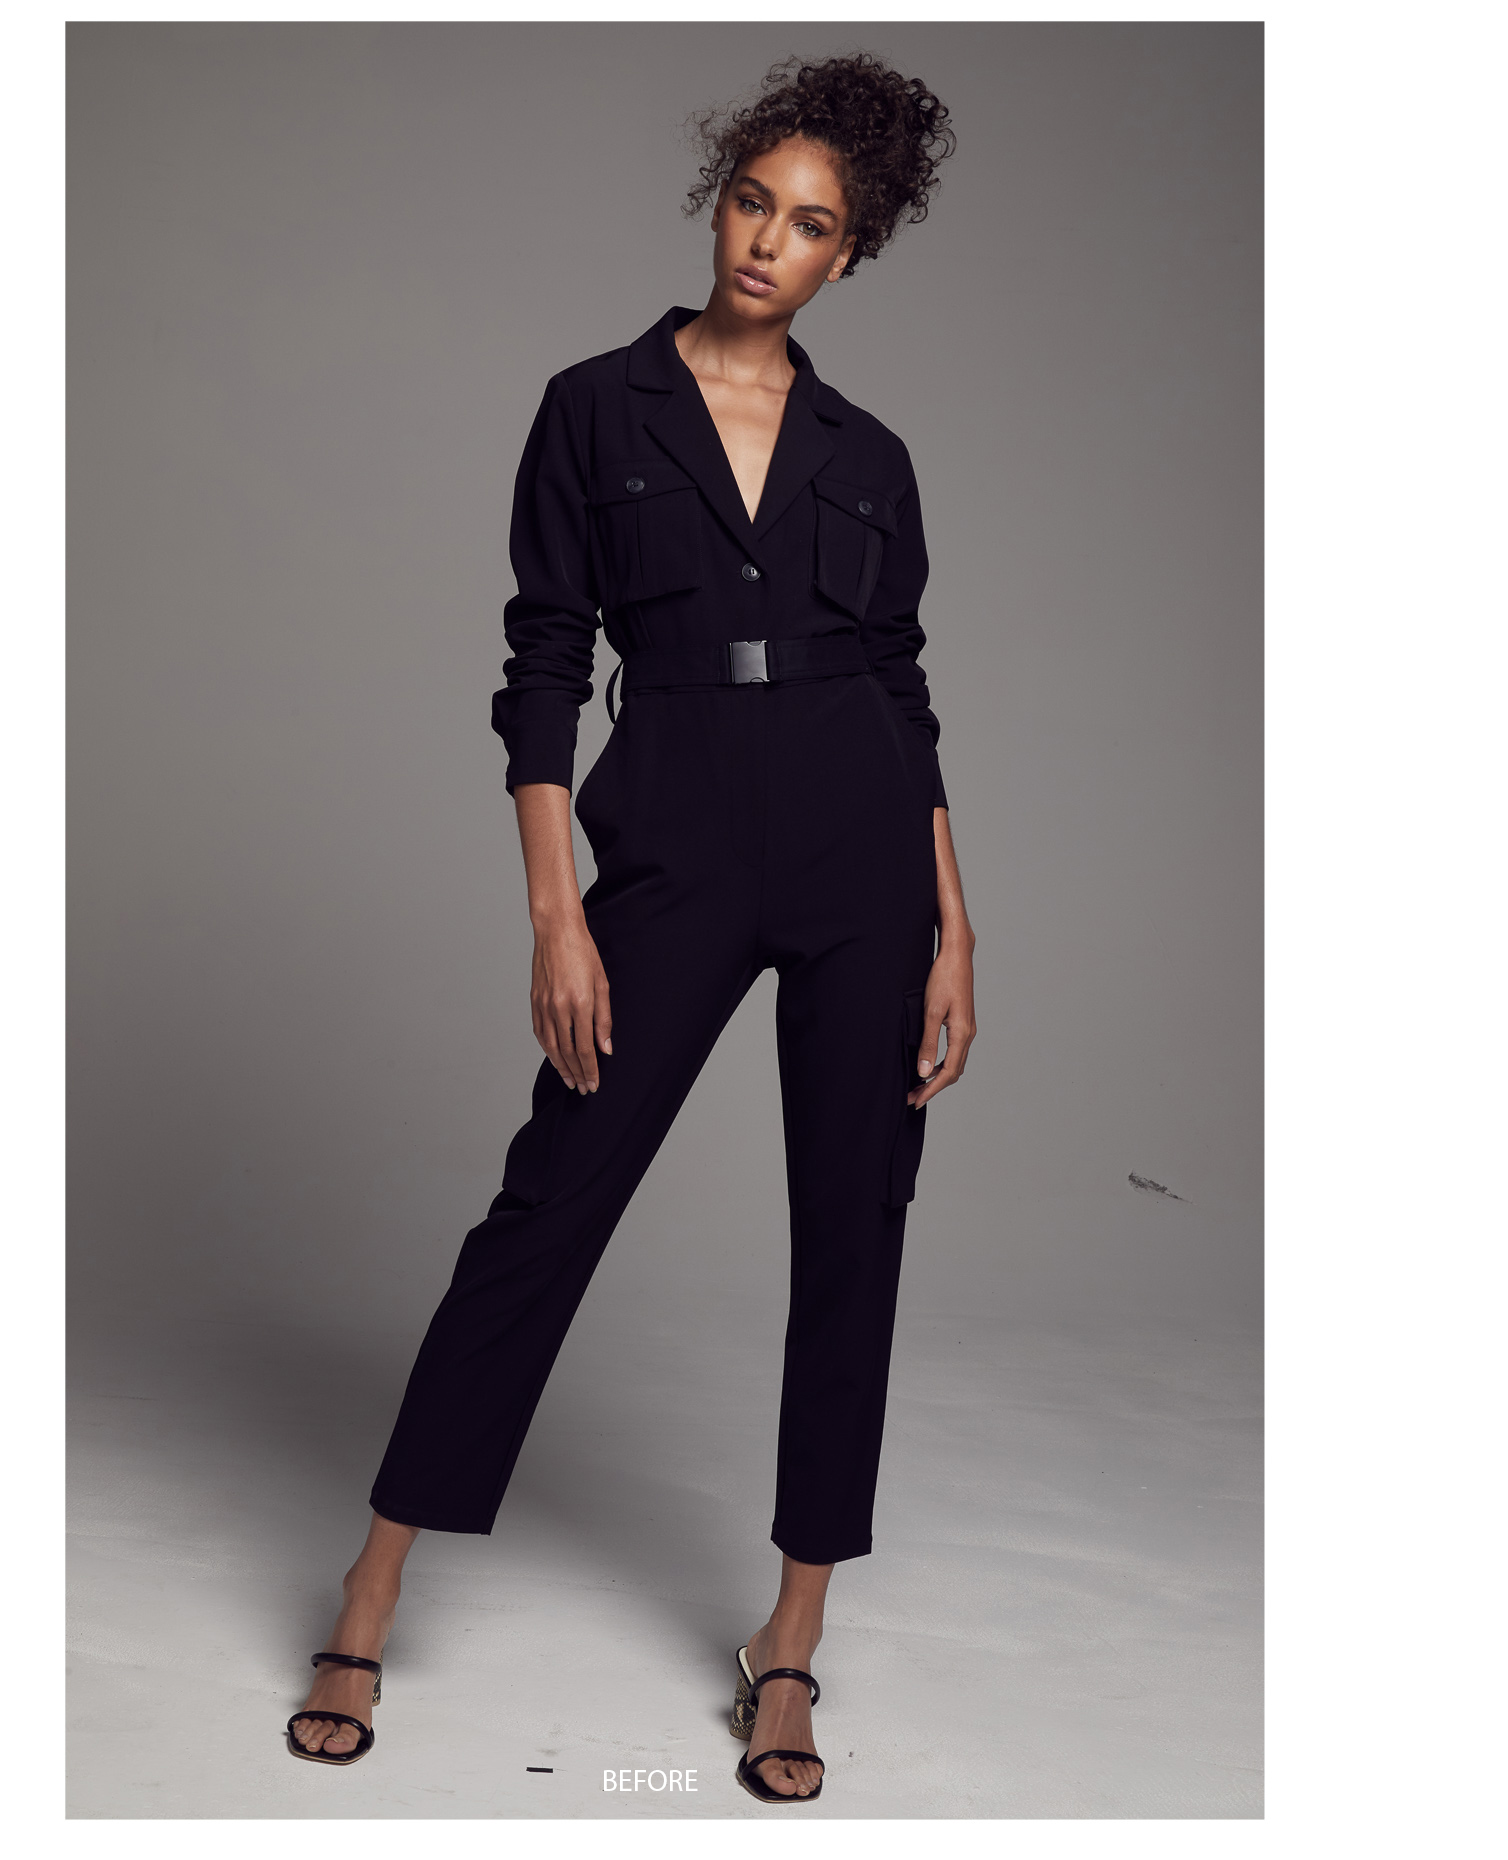 0919W2_RTW_TrendBoilerSuits_OF1_056b